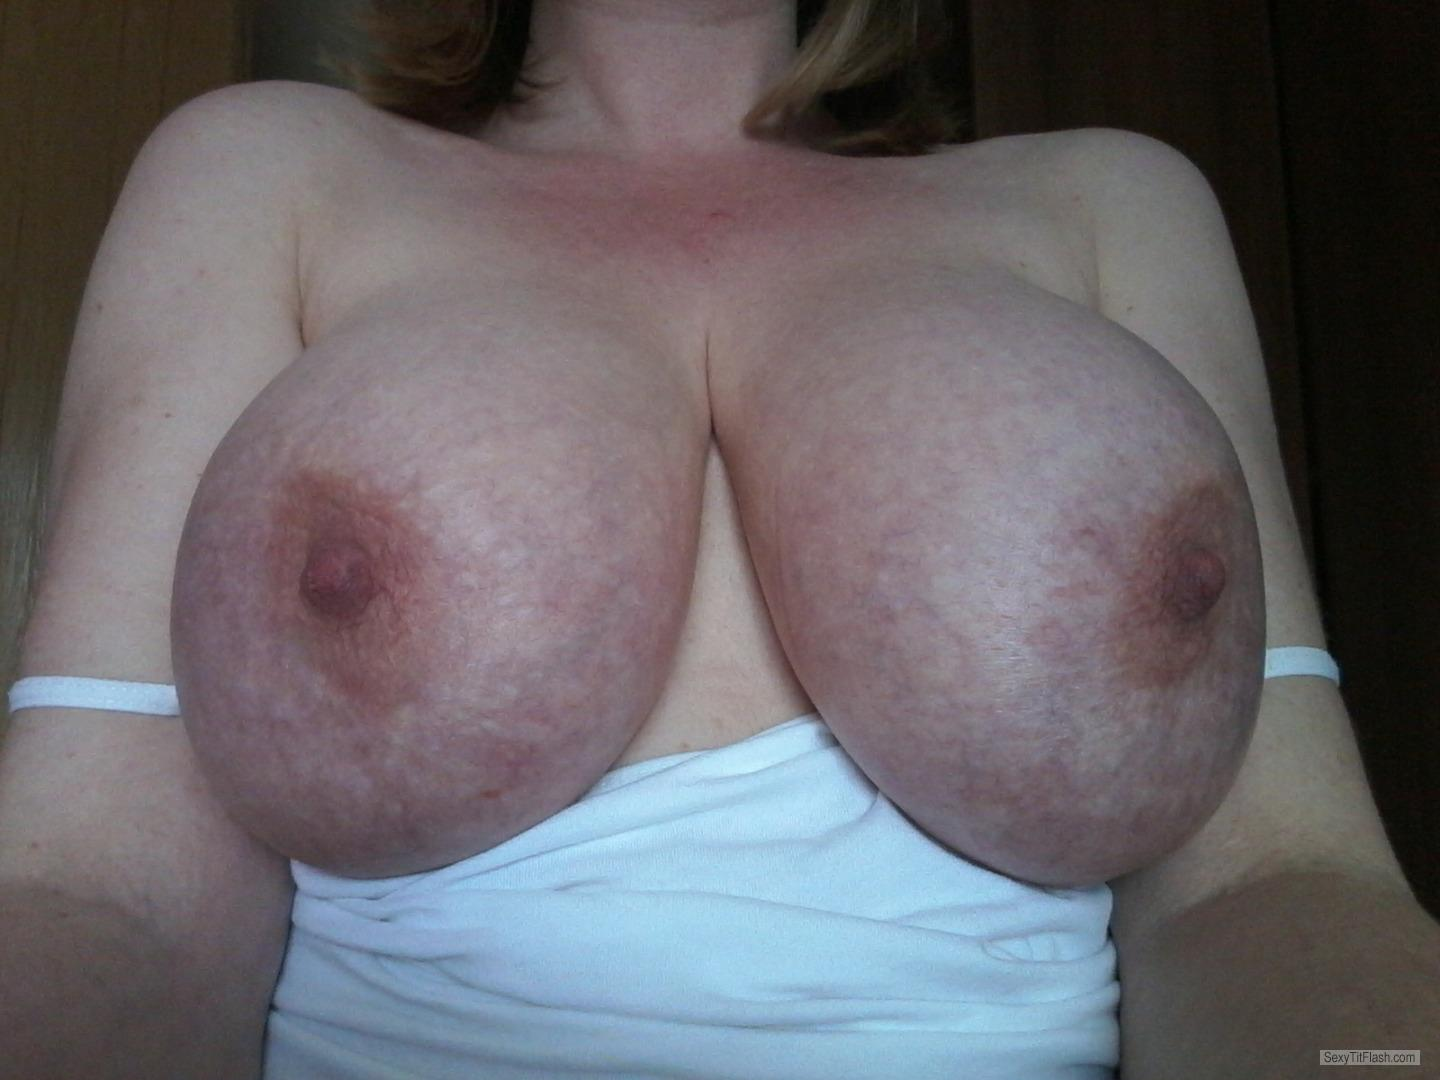 My Big Tits Selfie by J's Mellons